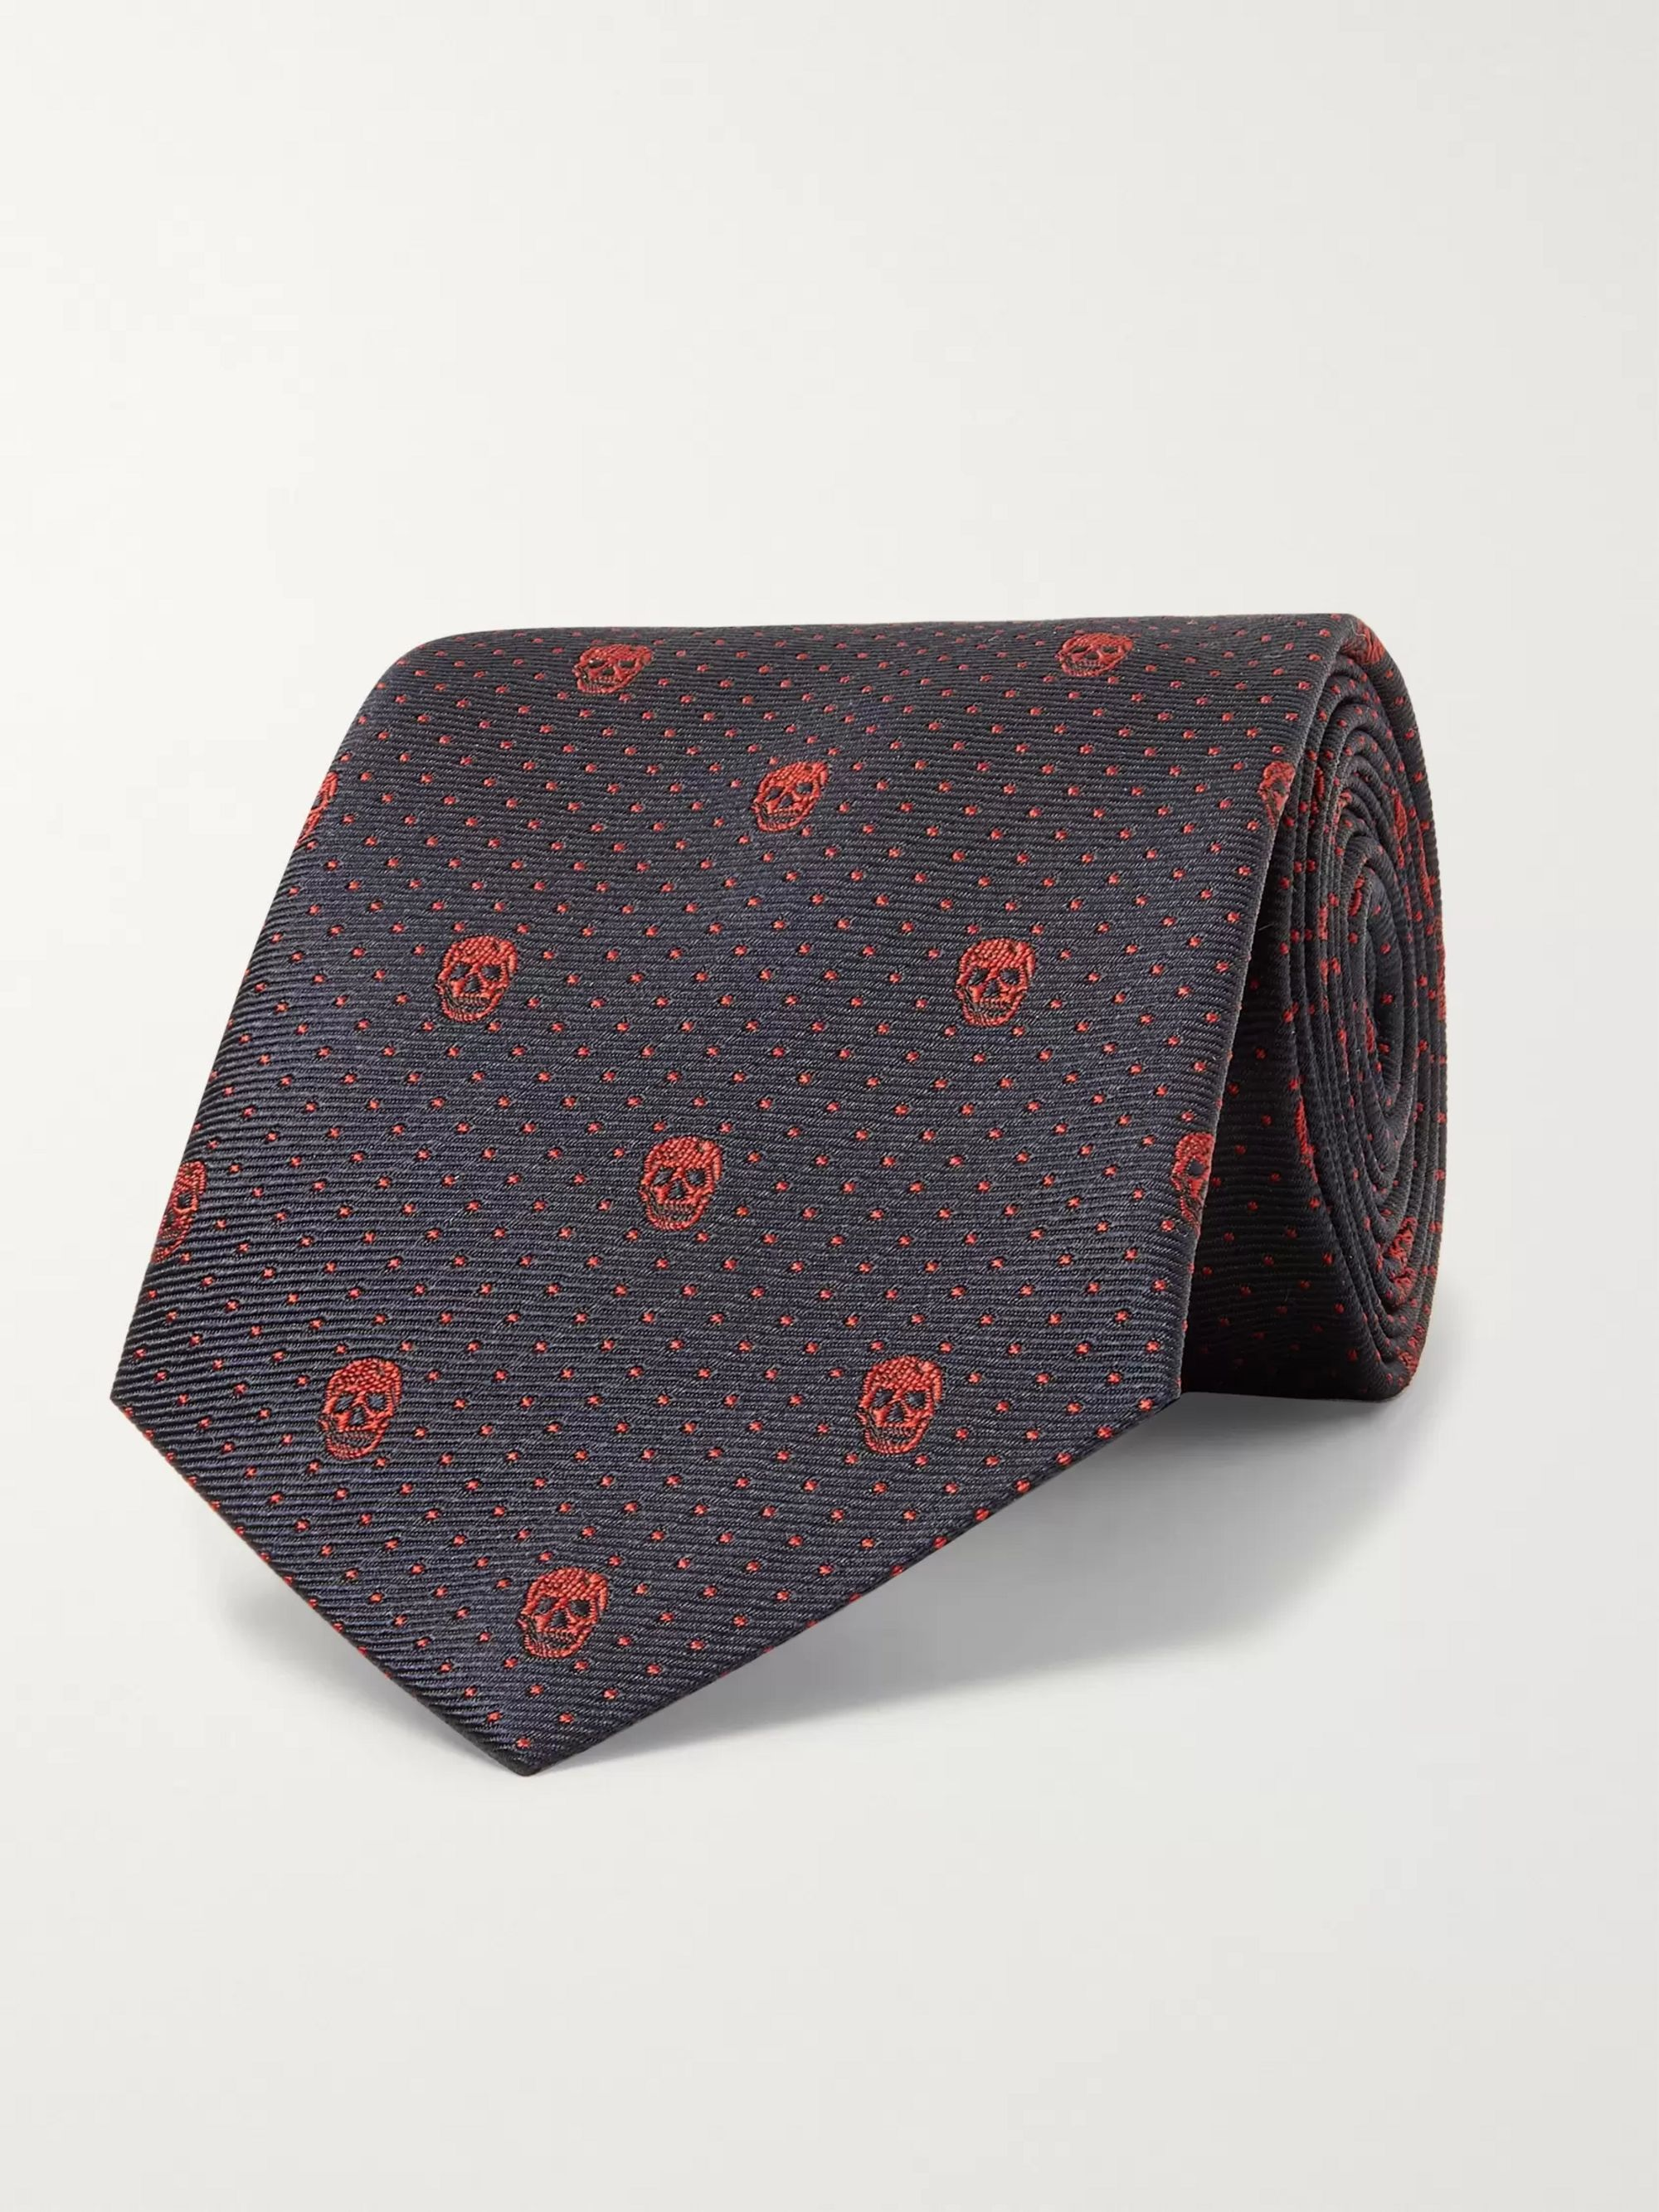 Alexander McQueen Skull and Polka-Dot Embroidered Silk Tie